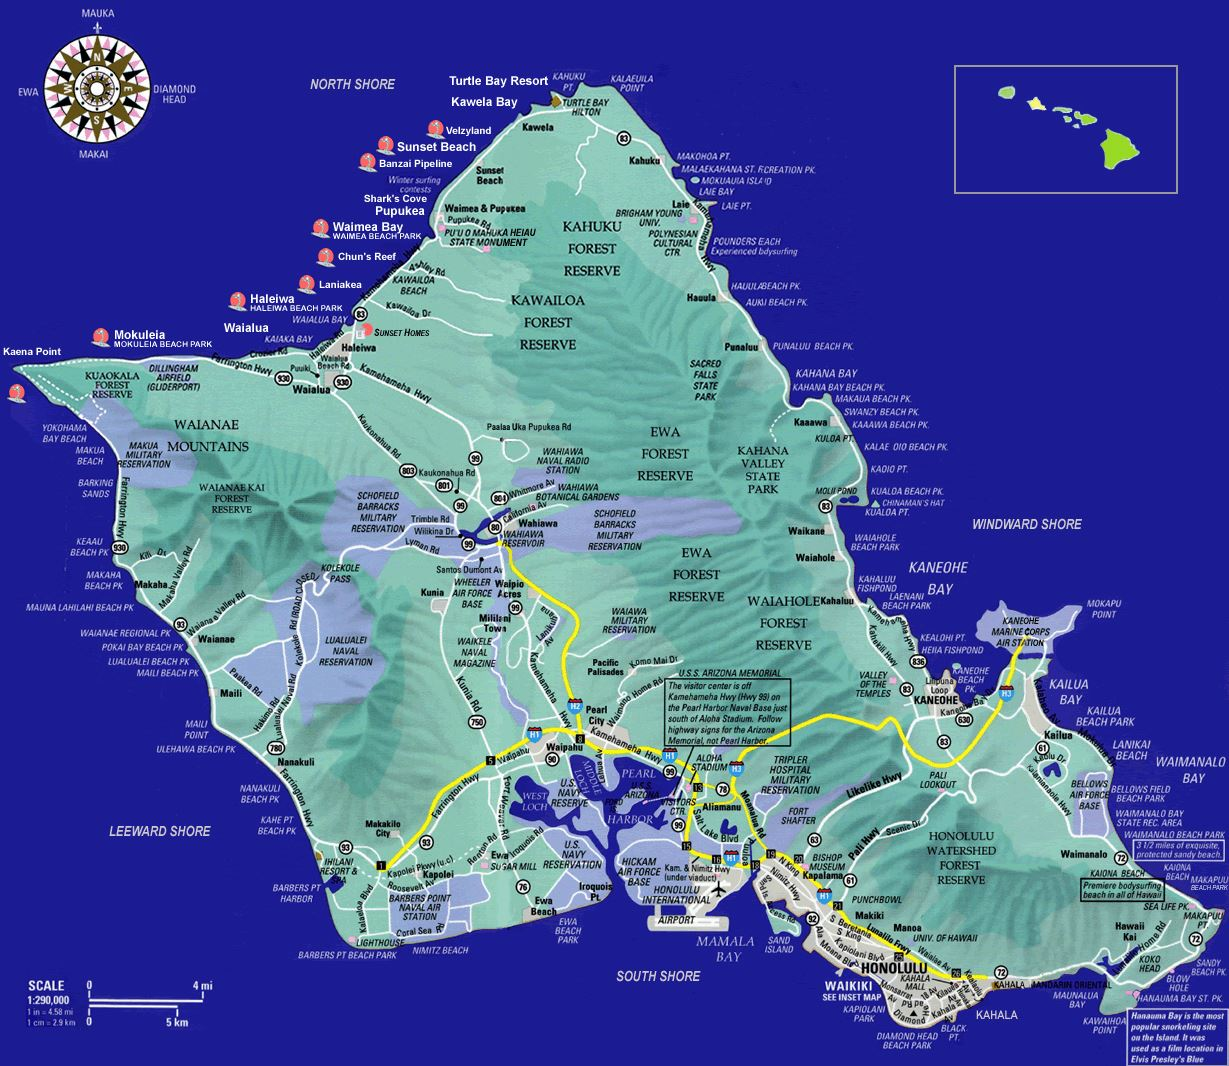 Island Of Oahu Map Large Oahu Island Maps for Free Download and Print | High